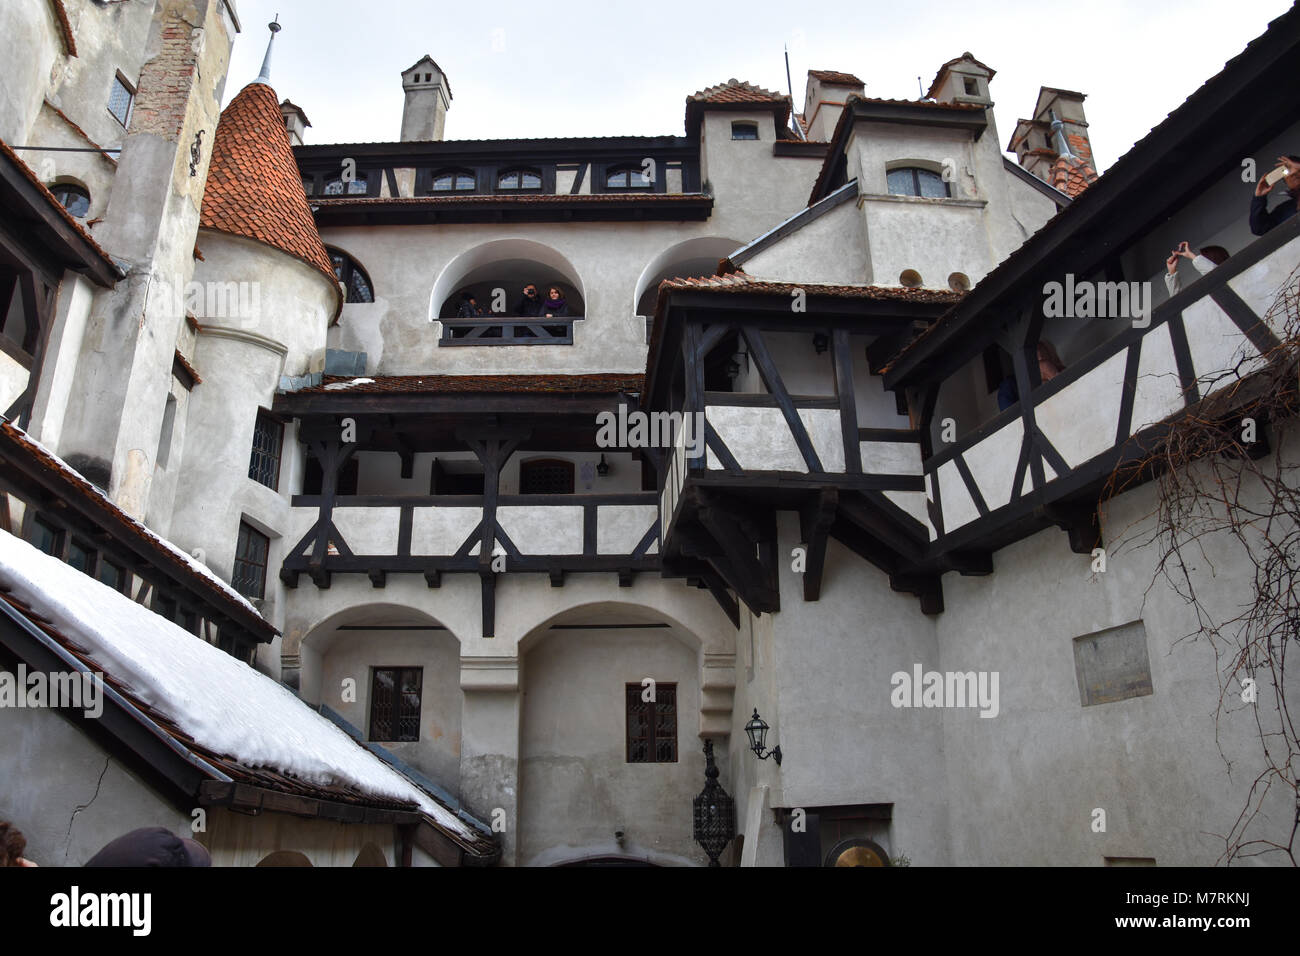 Bran, Romania. February 4, 2017. Inside the Bran Castle (Castelul Bran), commonly known as 'Dracula's Castle' - Stock Image